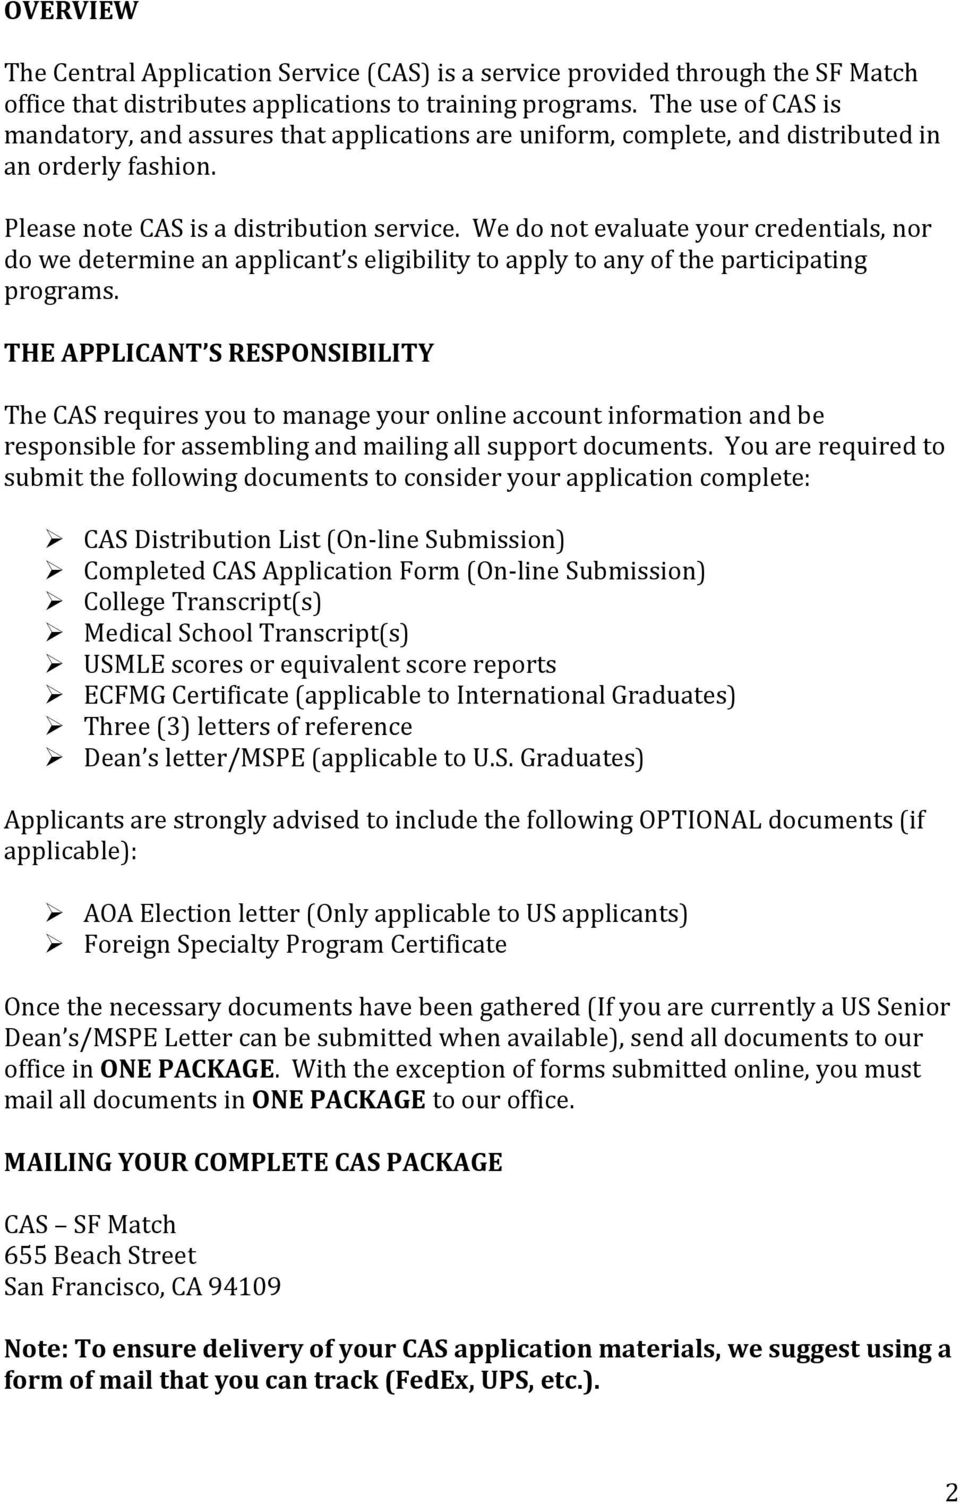 Ophthalmology Residency Central Application Service (CAS